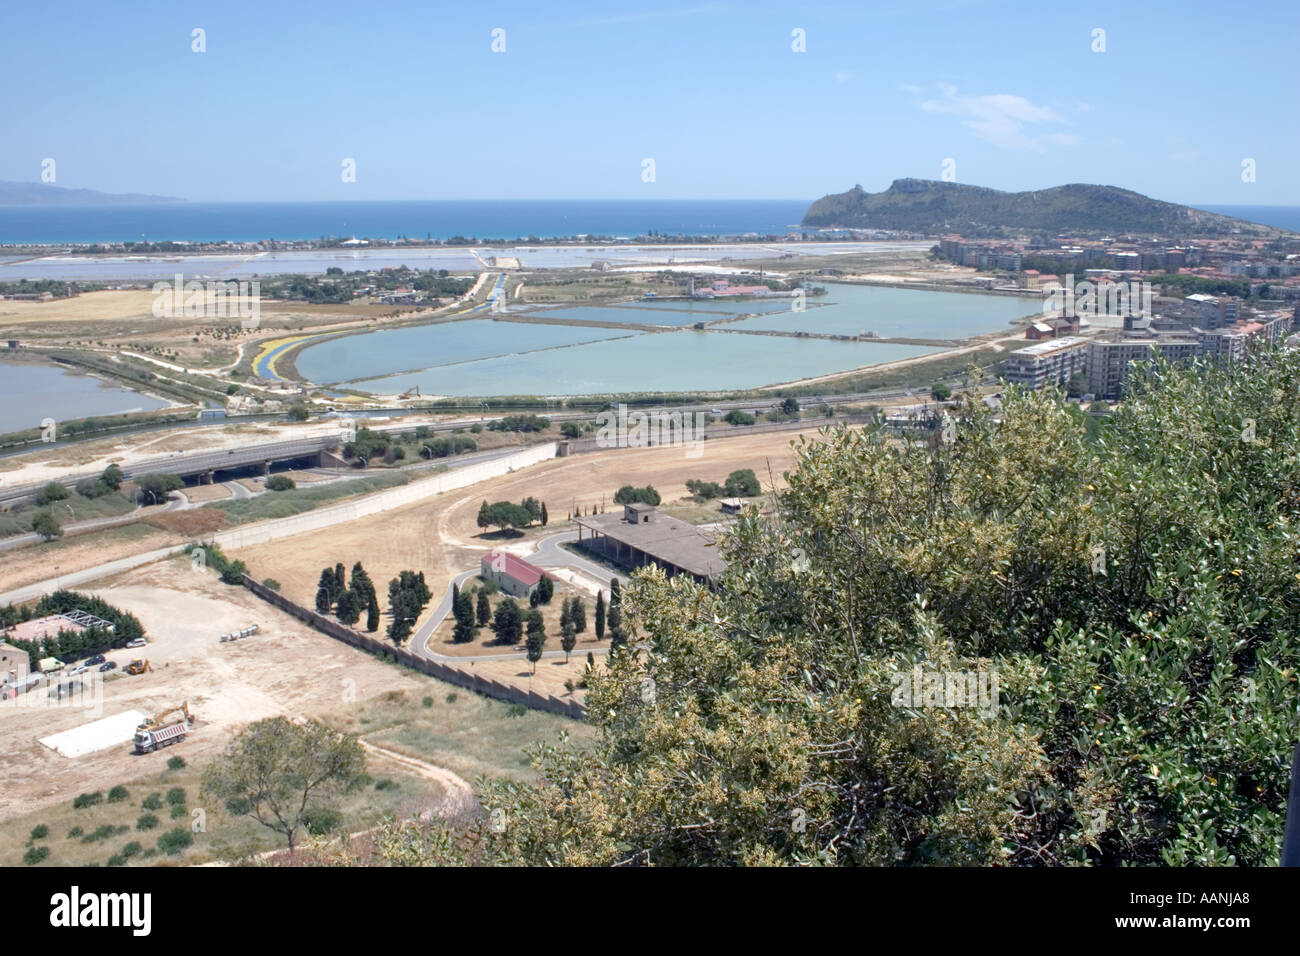 Cagliari Salt Flats and the so called Devils Saddle, Cagliari Salt Flats, Sardinia, Europe, Cagliari, sand, salt, - Stock Image